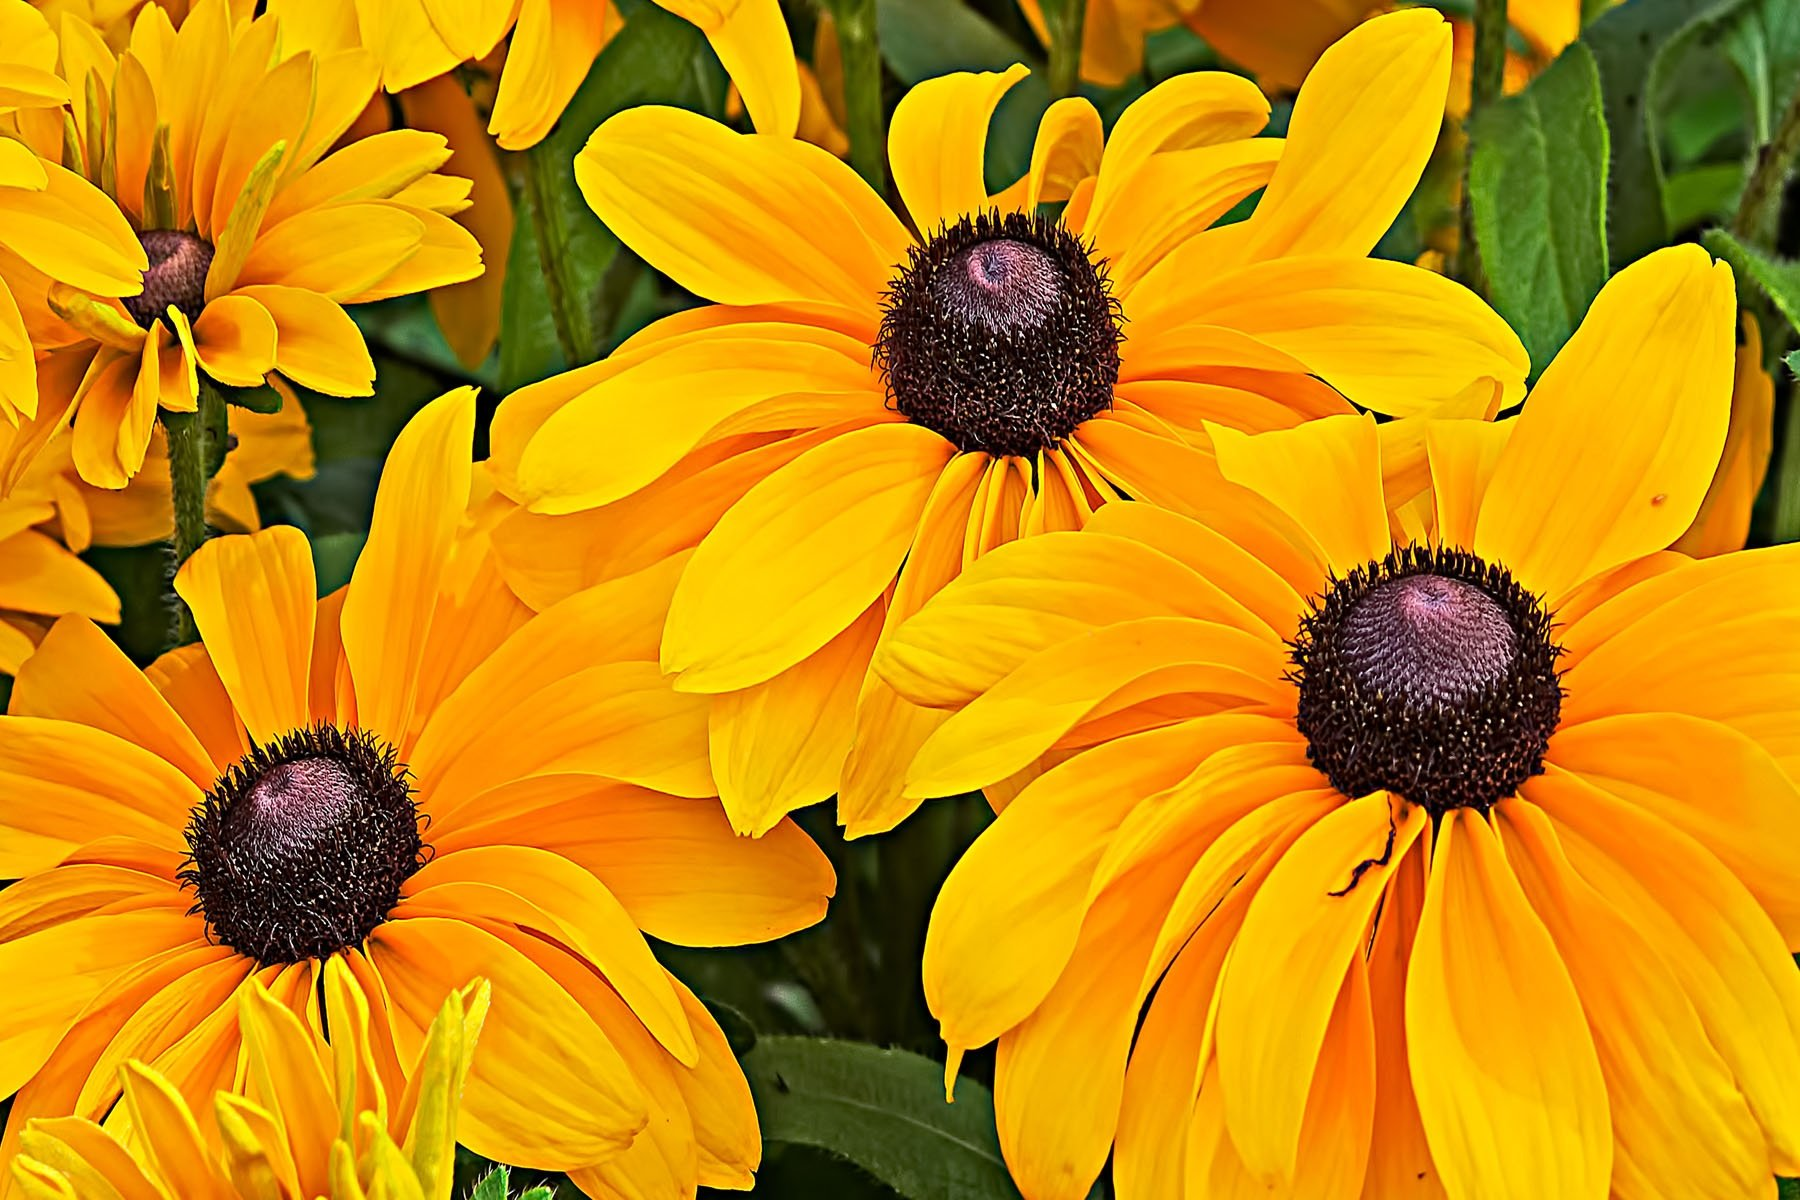 YELLOW - Yellow daisys, yellow flowers, yellow black-eyed susans... no matter what you call them, they are yellow.